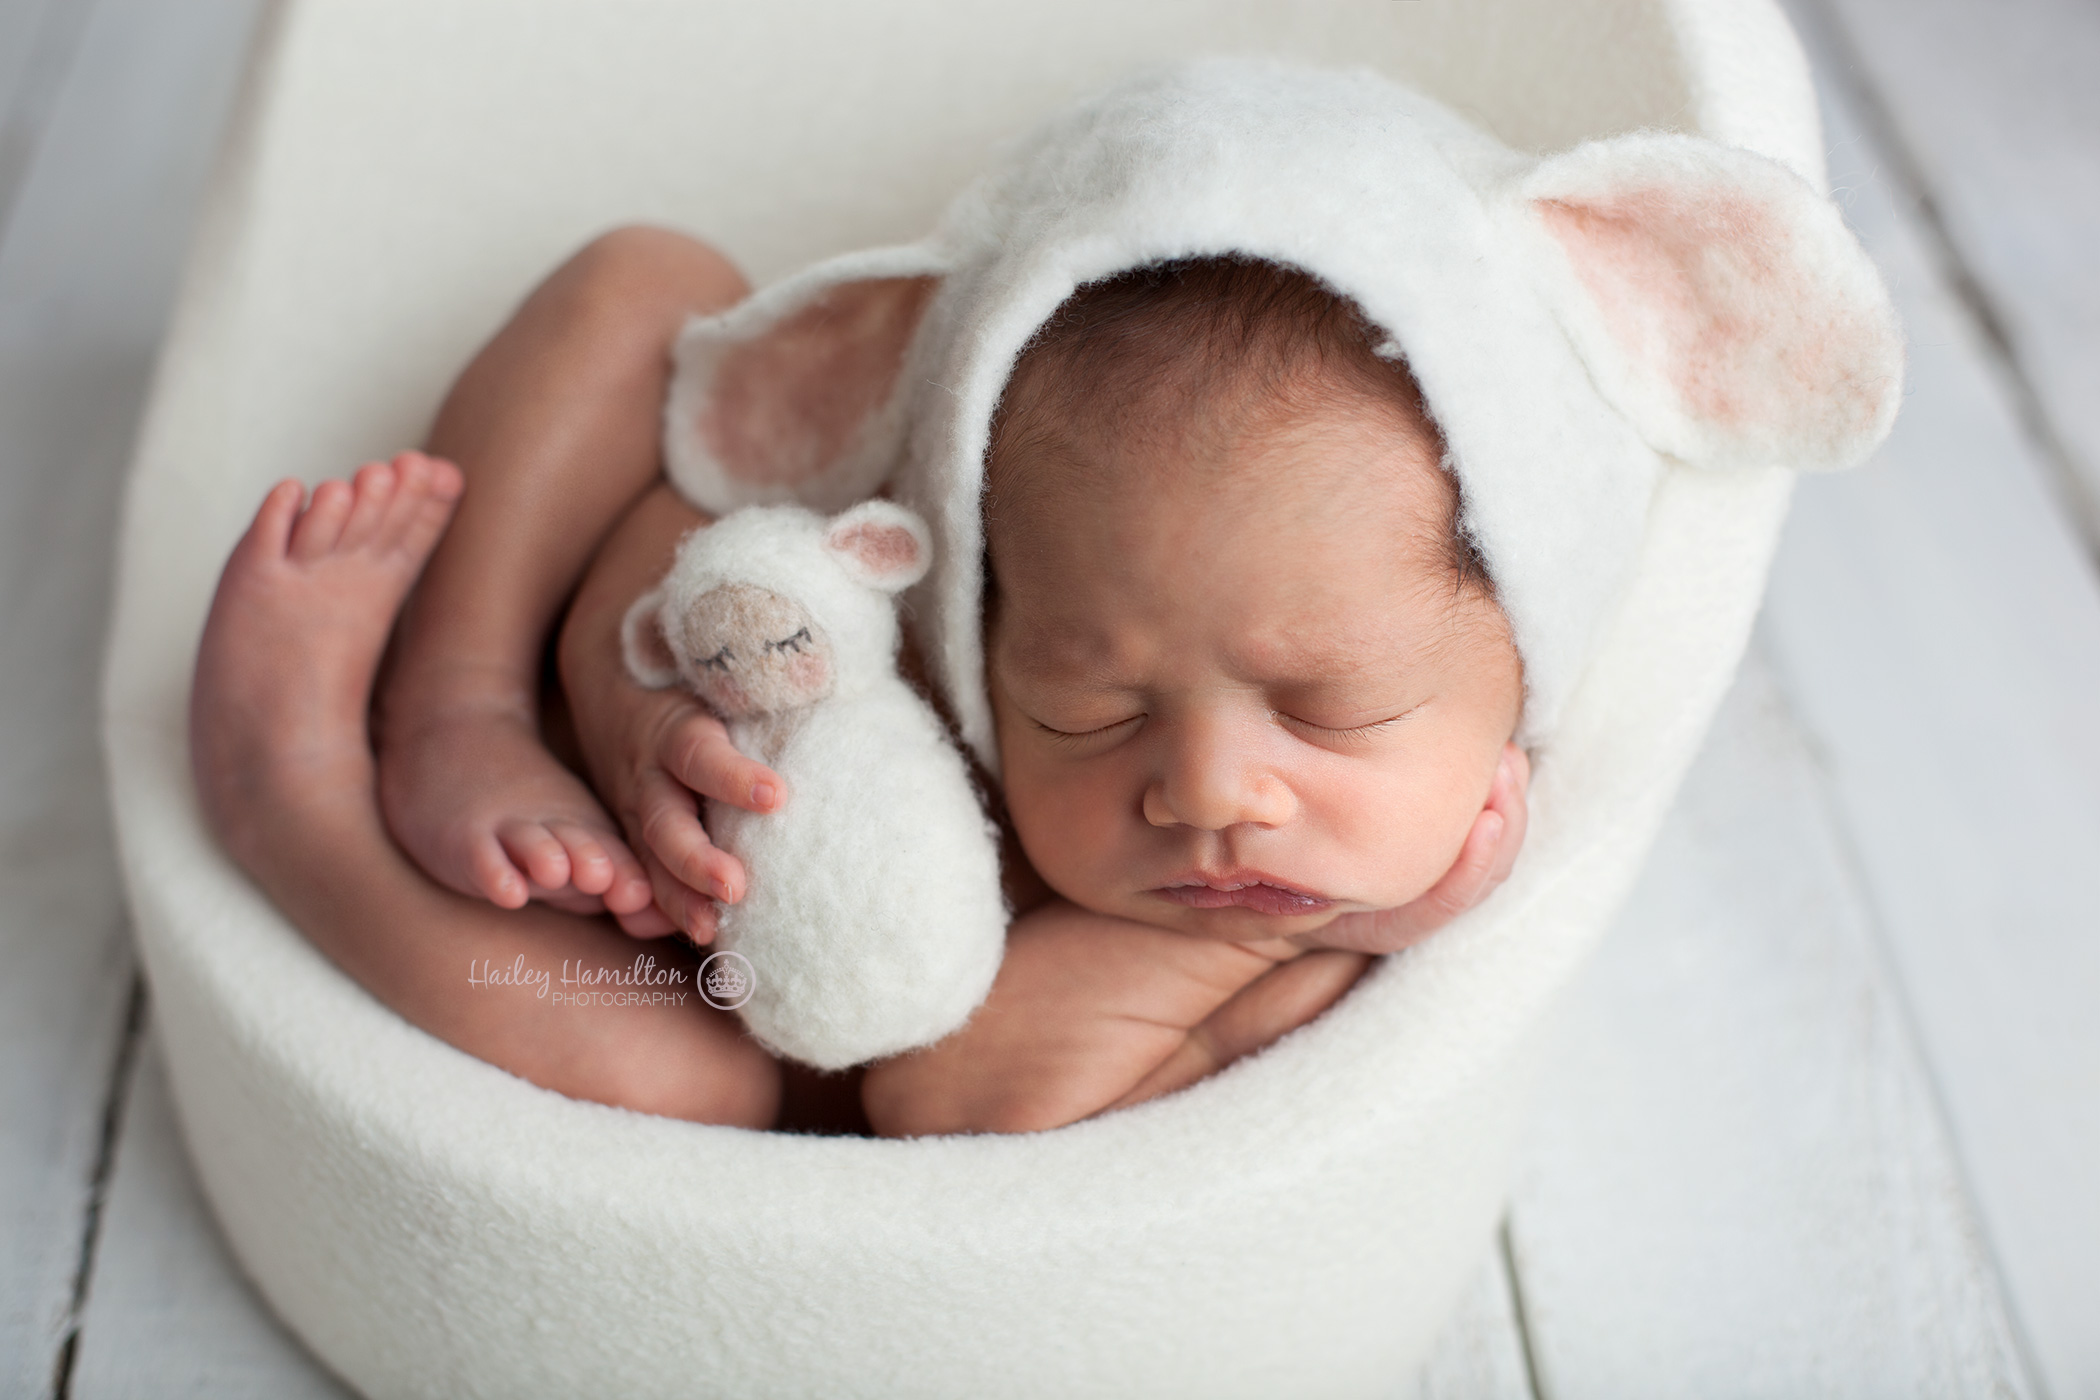 Newborn on chair prop wearing lamb bonnet